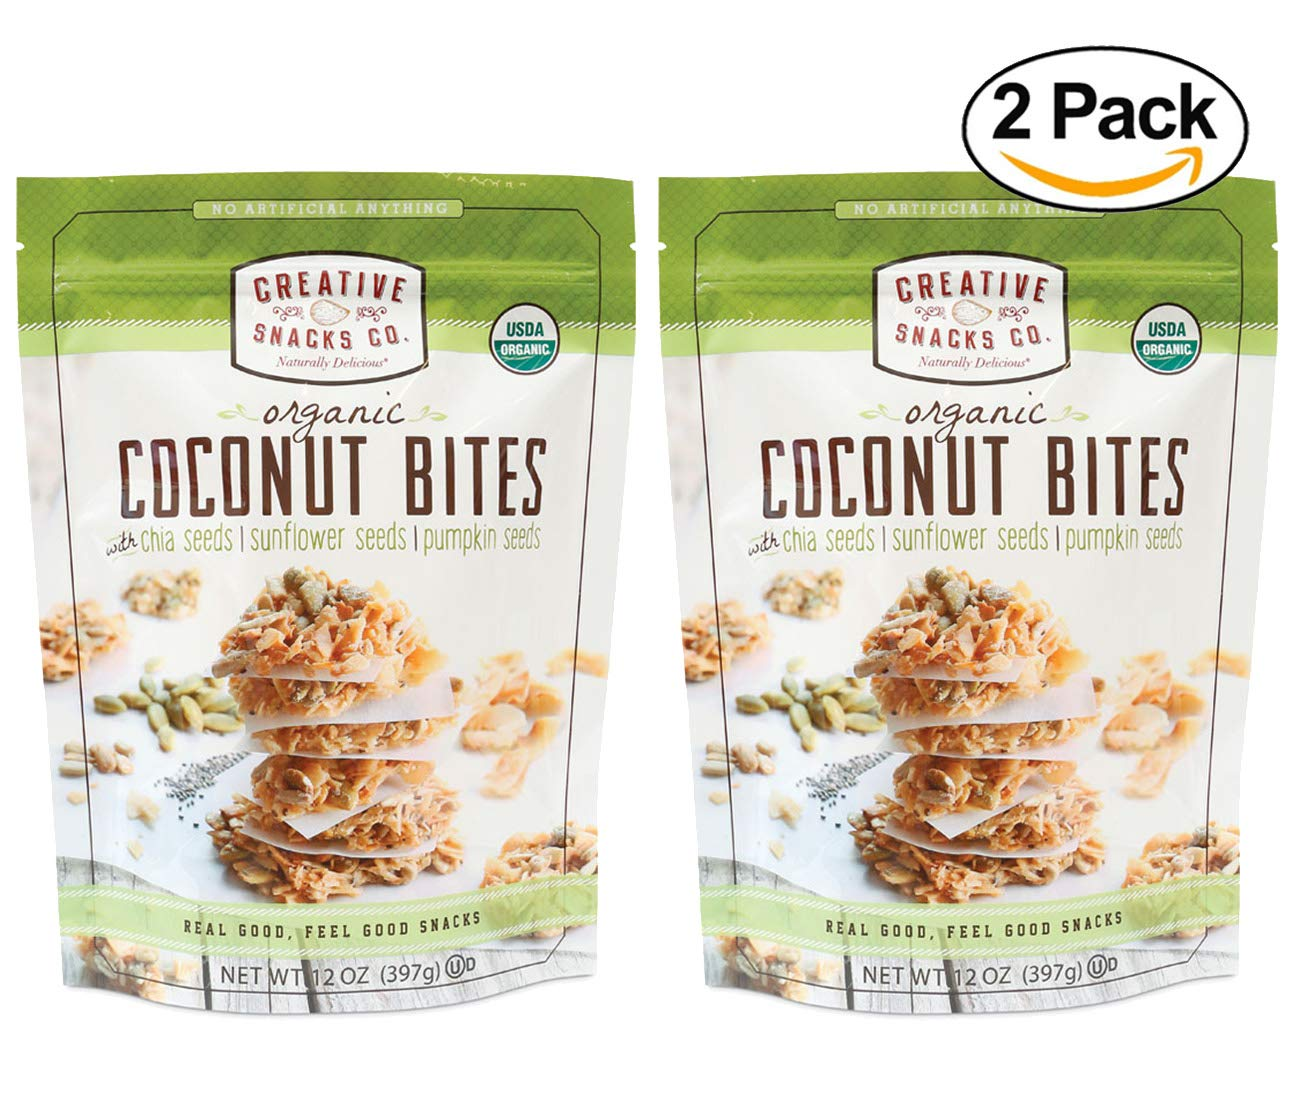 Creative Snacks Naturally Delicious Organic Coconut Bites with Chia, Sunflower and Pumpkin Seeds, 2 Pack, 12 Ounce Resealable Bags